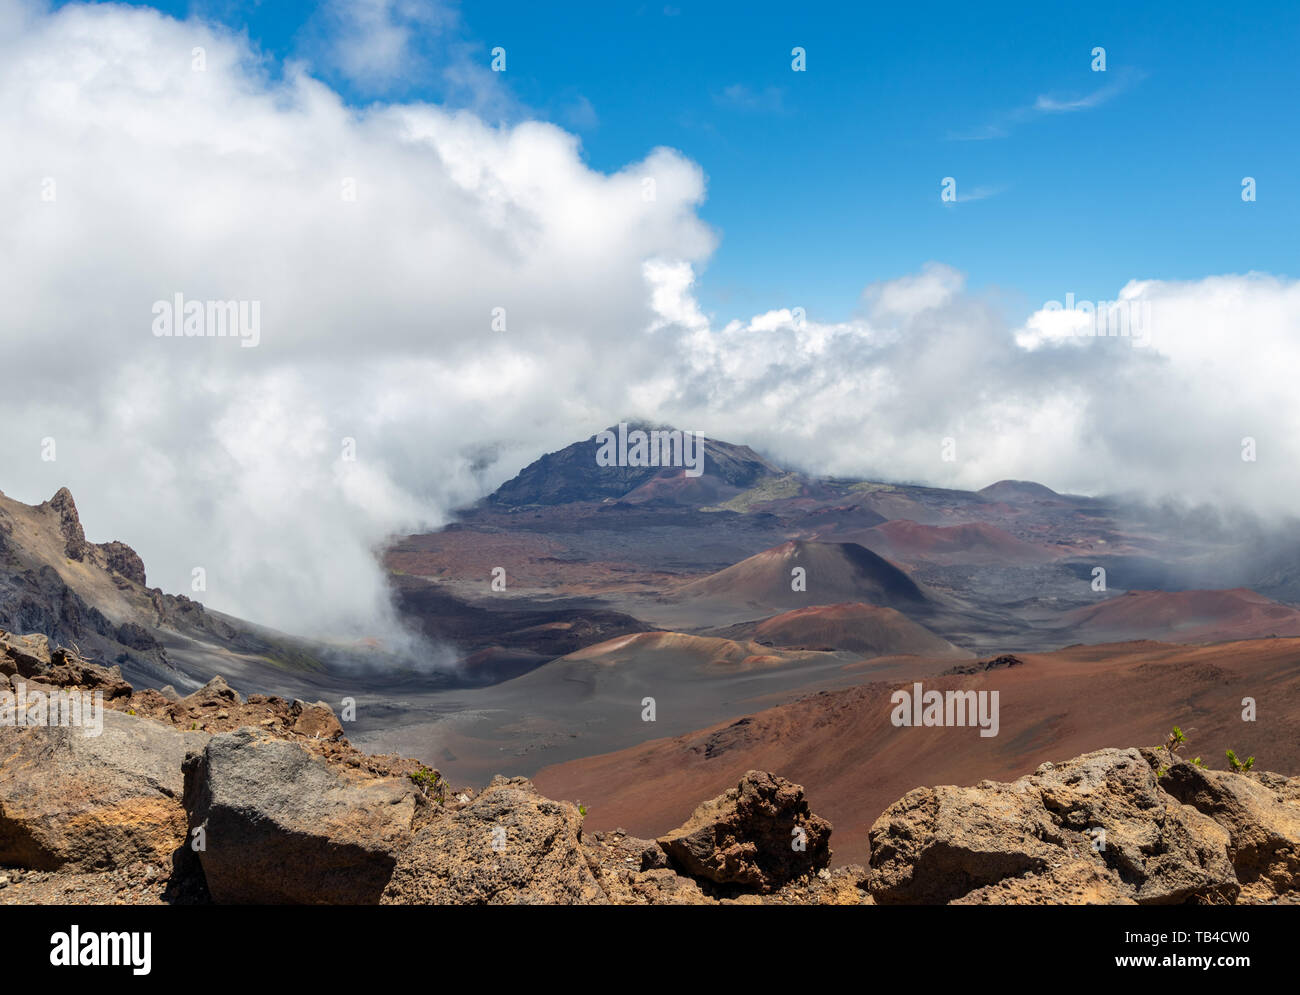 Clouds rolling over beautiful mountains with vivid colors at Haleakala National Park Stock Photo